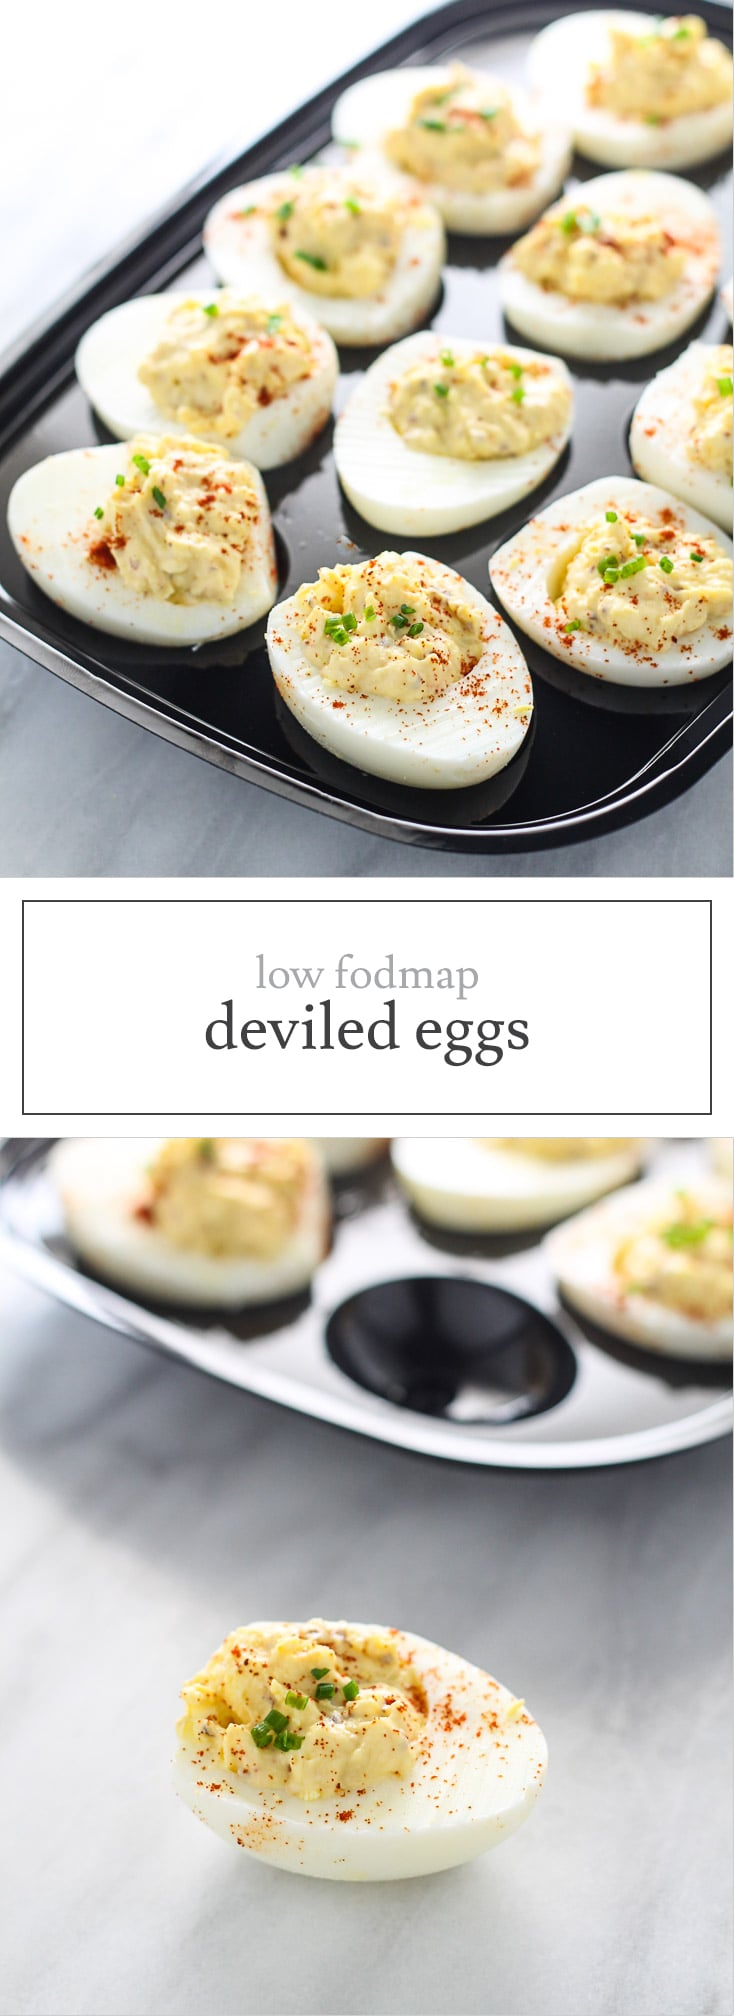 Low FODMAP Deviled Eggs - a FODMAP-friendly recipe for the classic appetizer. Make these bites for tailgating, holiday parties and more!